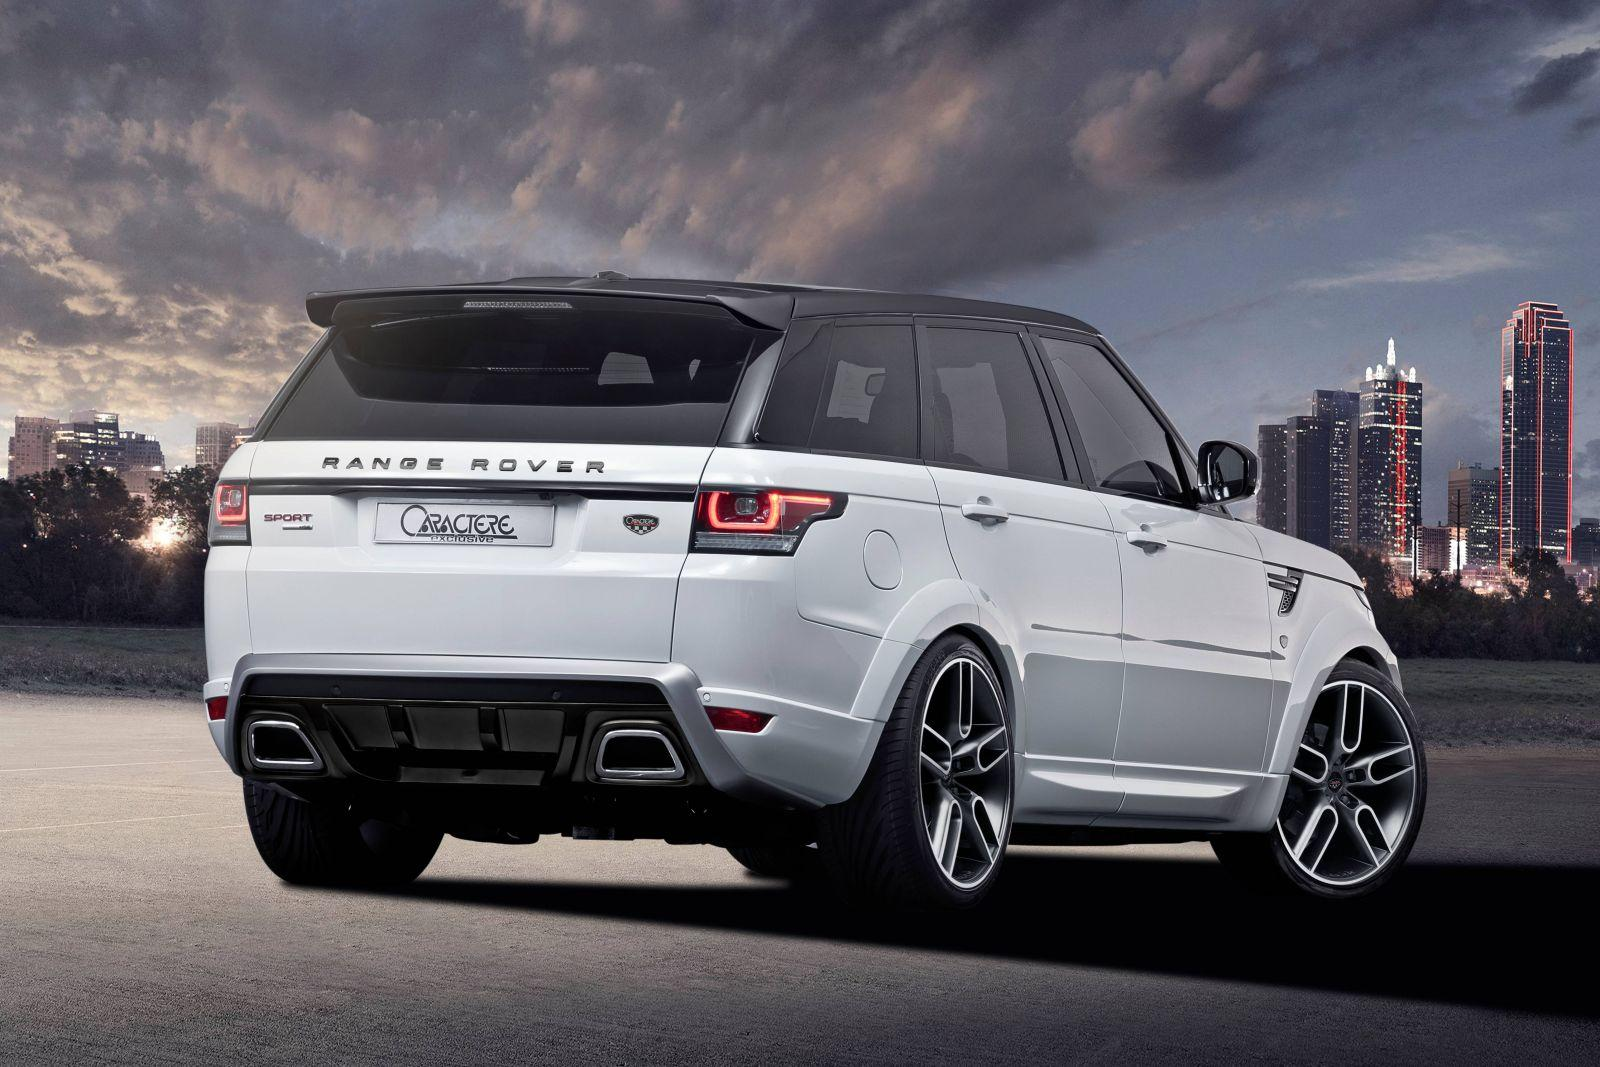 land rover range rover sport suv 2015 suv drive. Black Bedroom Furniture Sets. Home Design Ideas